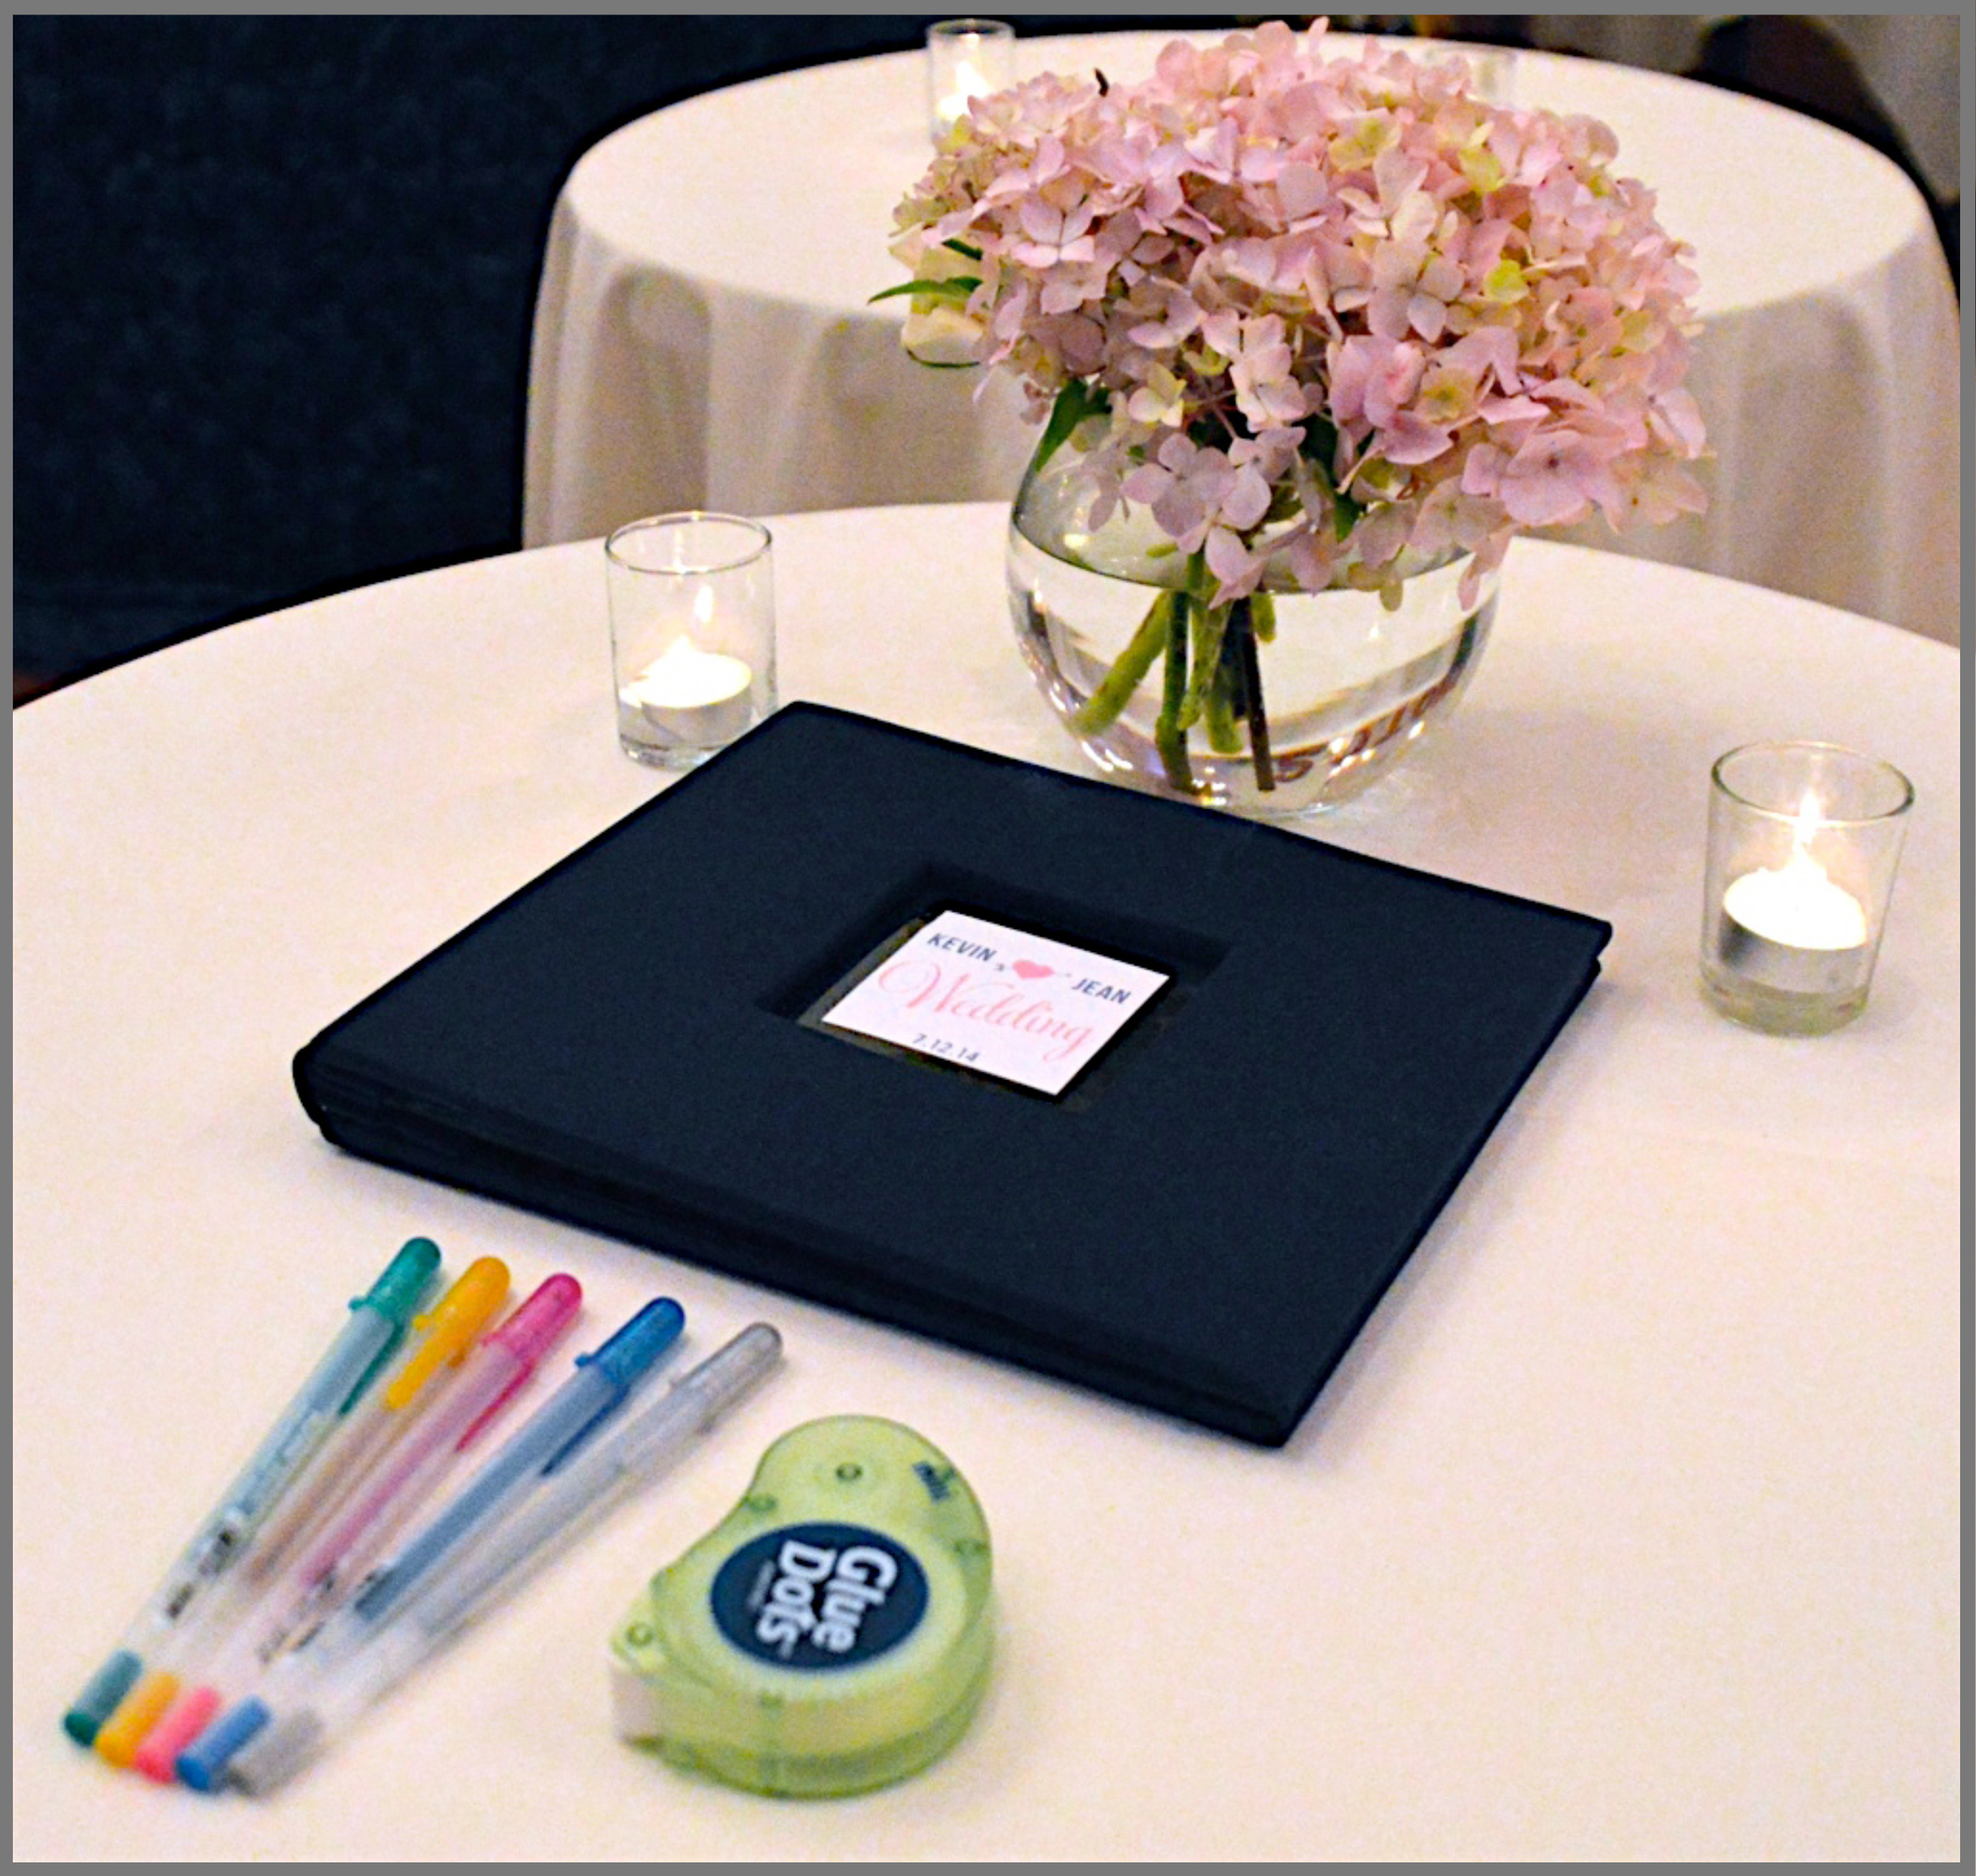 The guest book and gel pens are provided so guests can leave a copy of their photo strip as well as a short message for the host of the event.